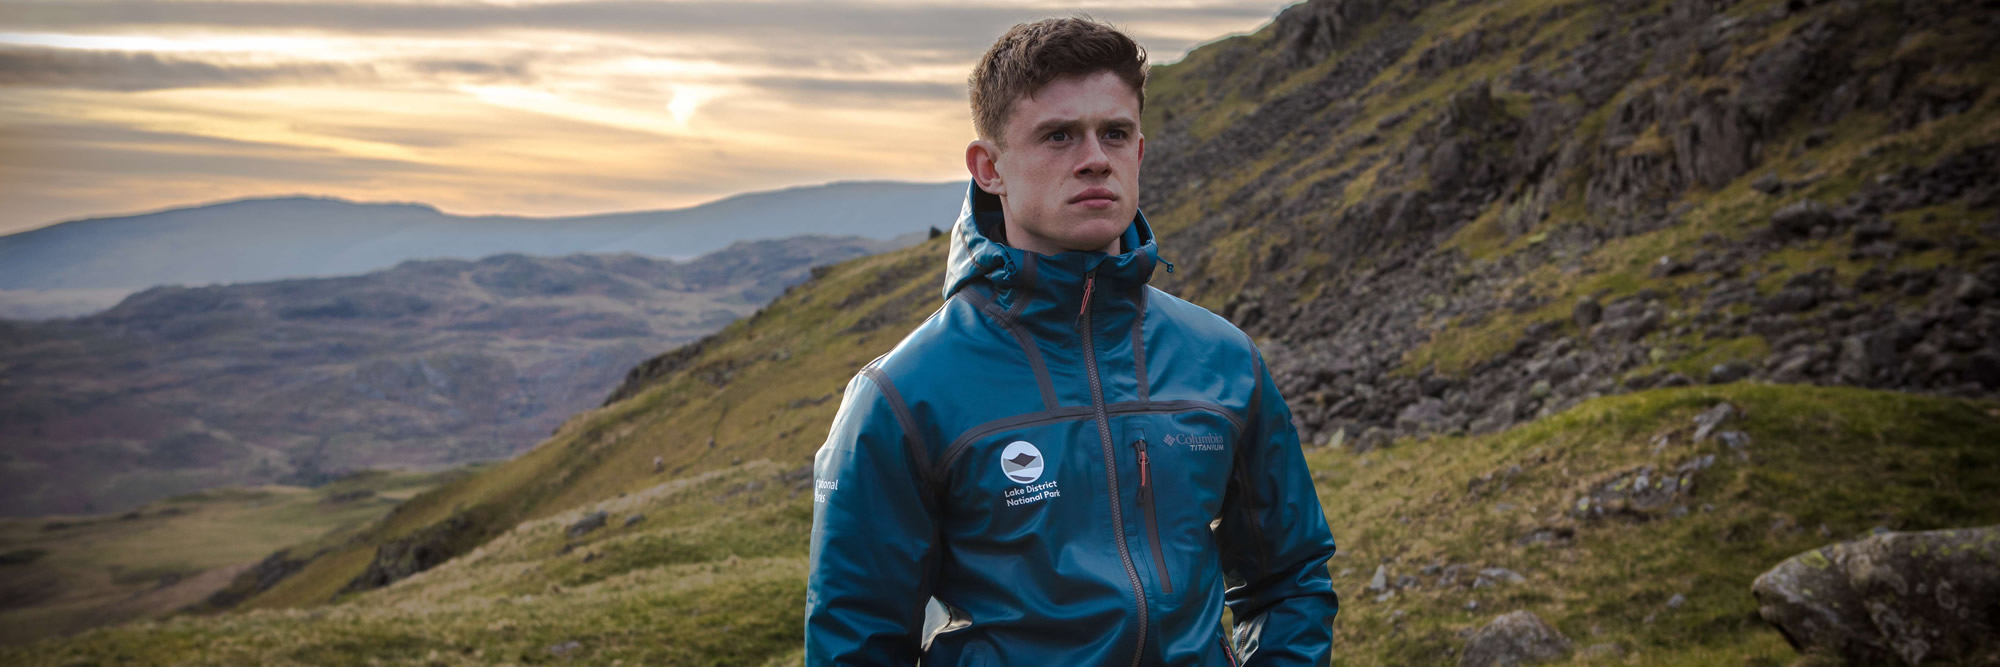 National Park ranger in the Lake District